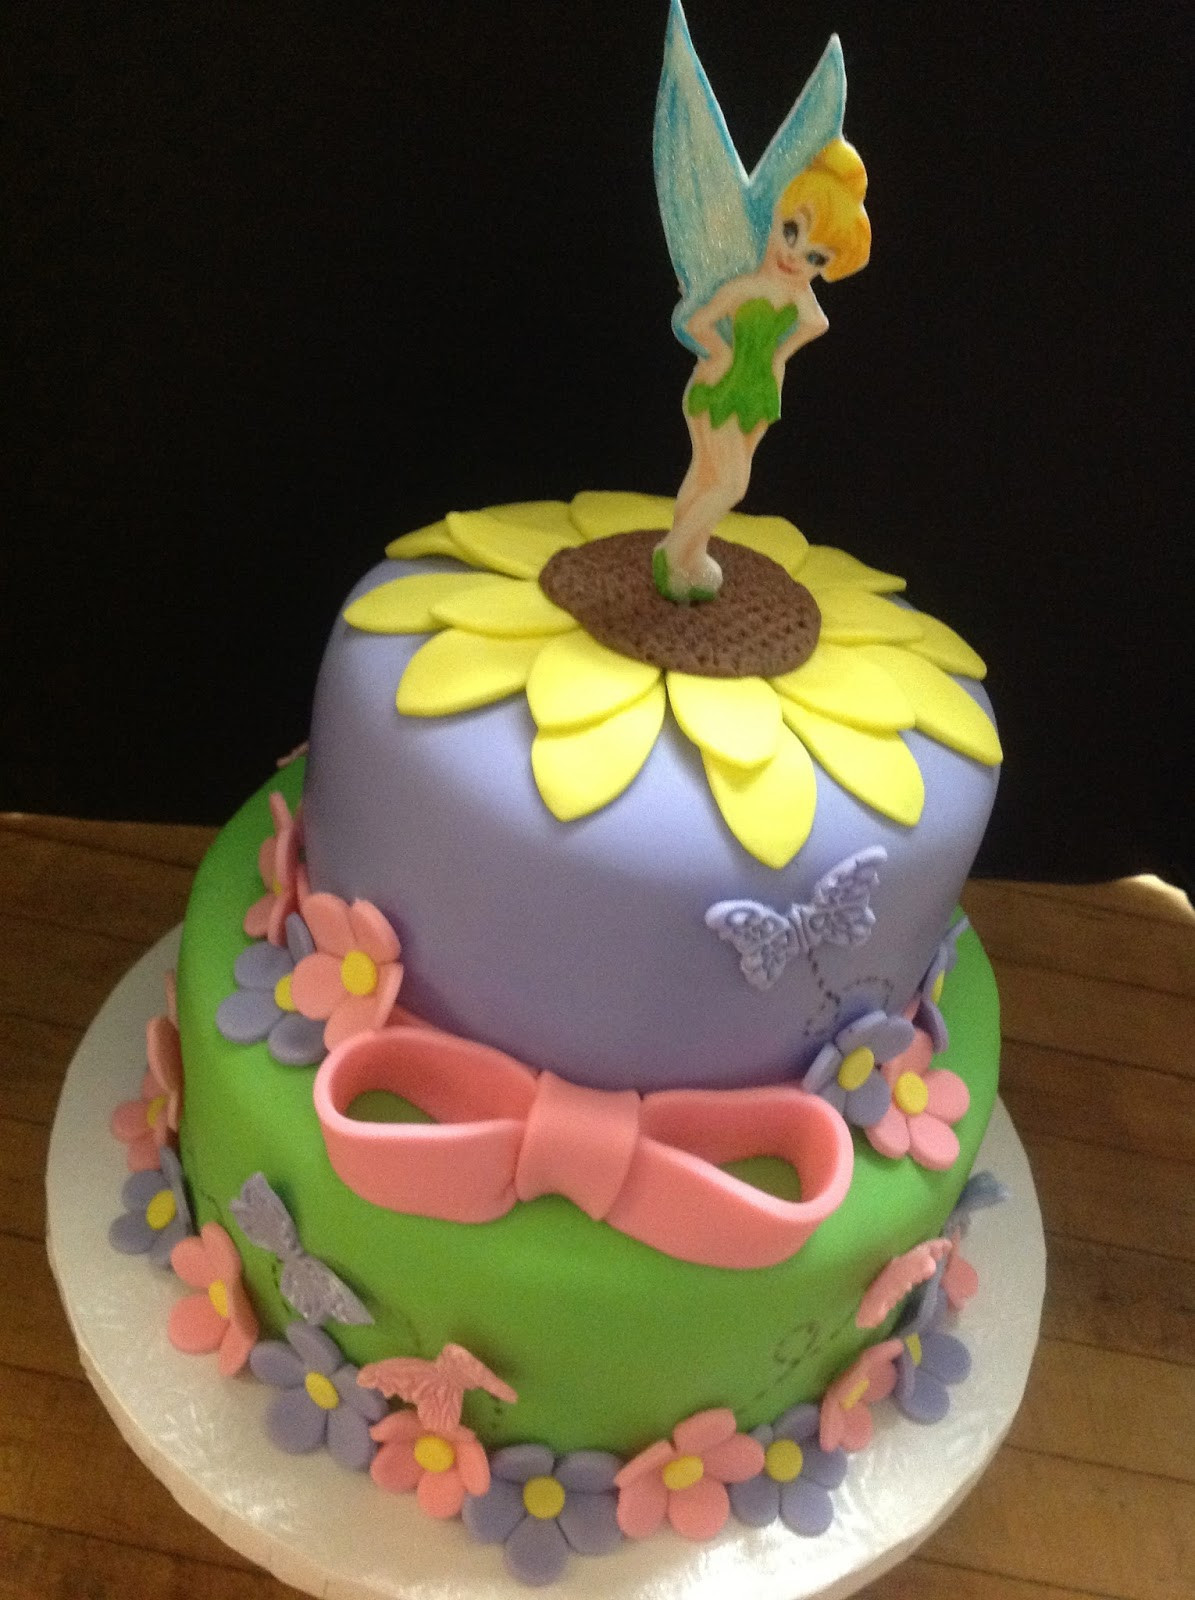 Best ideas about Tinkerbell Birthday Cake . Save or Pin Plumeria Cake Studio Tinkerbell Birthday Cake Now.